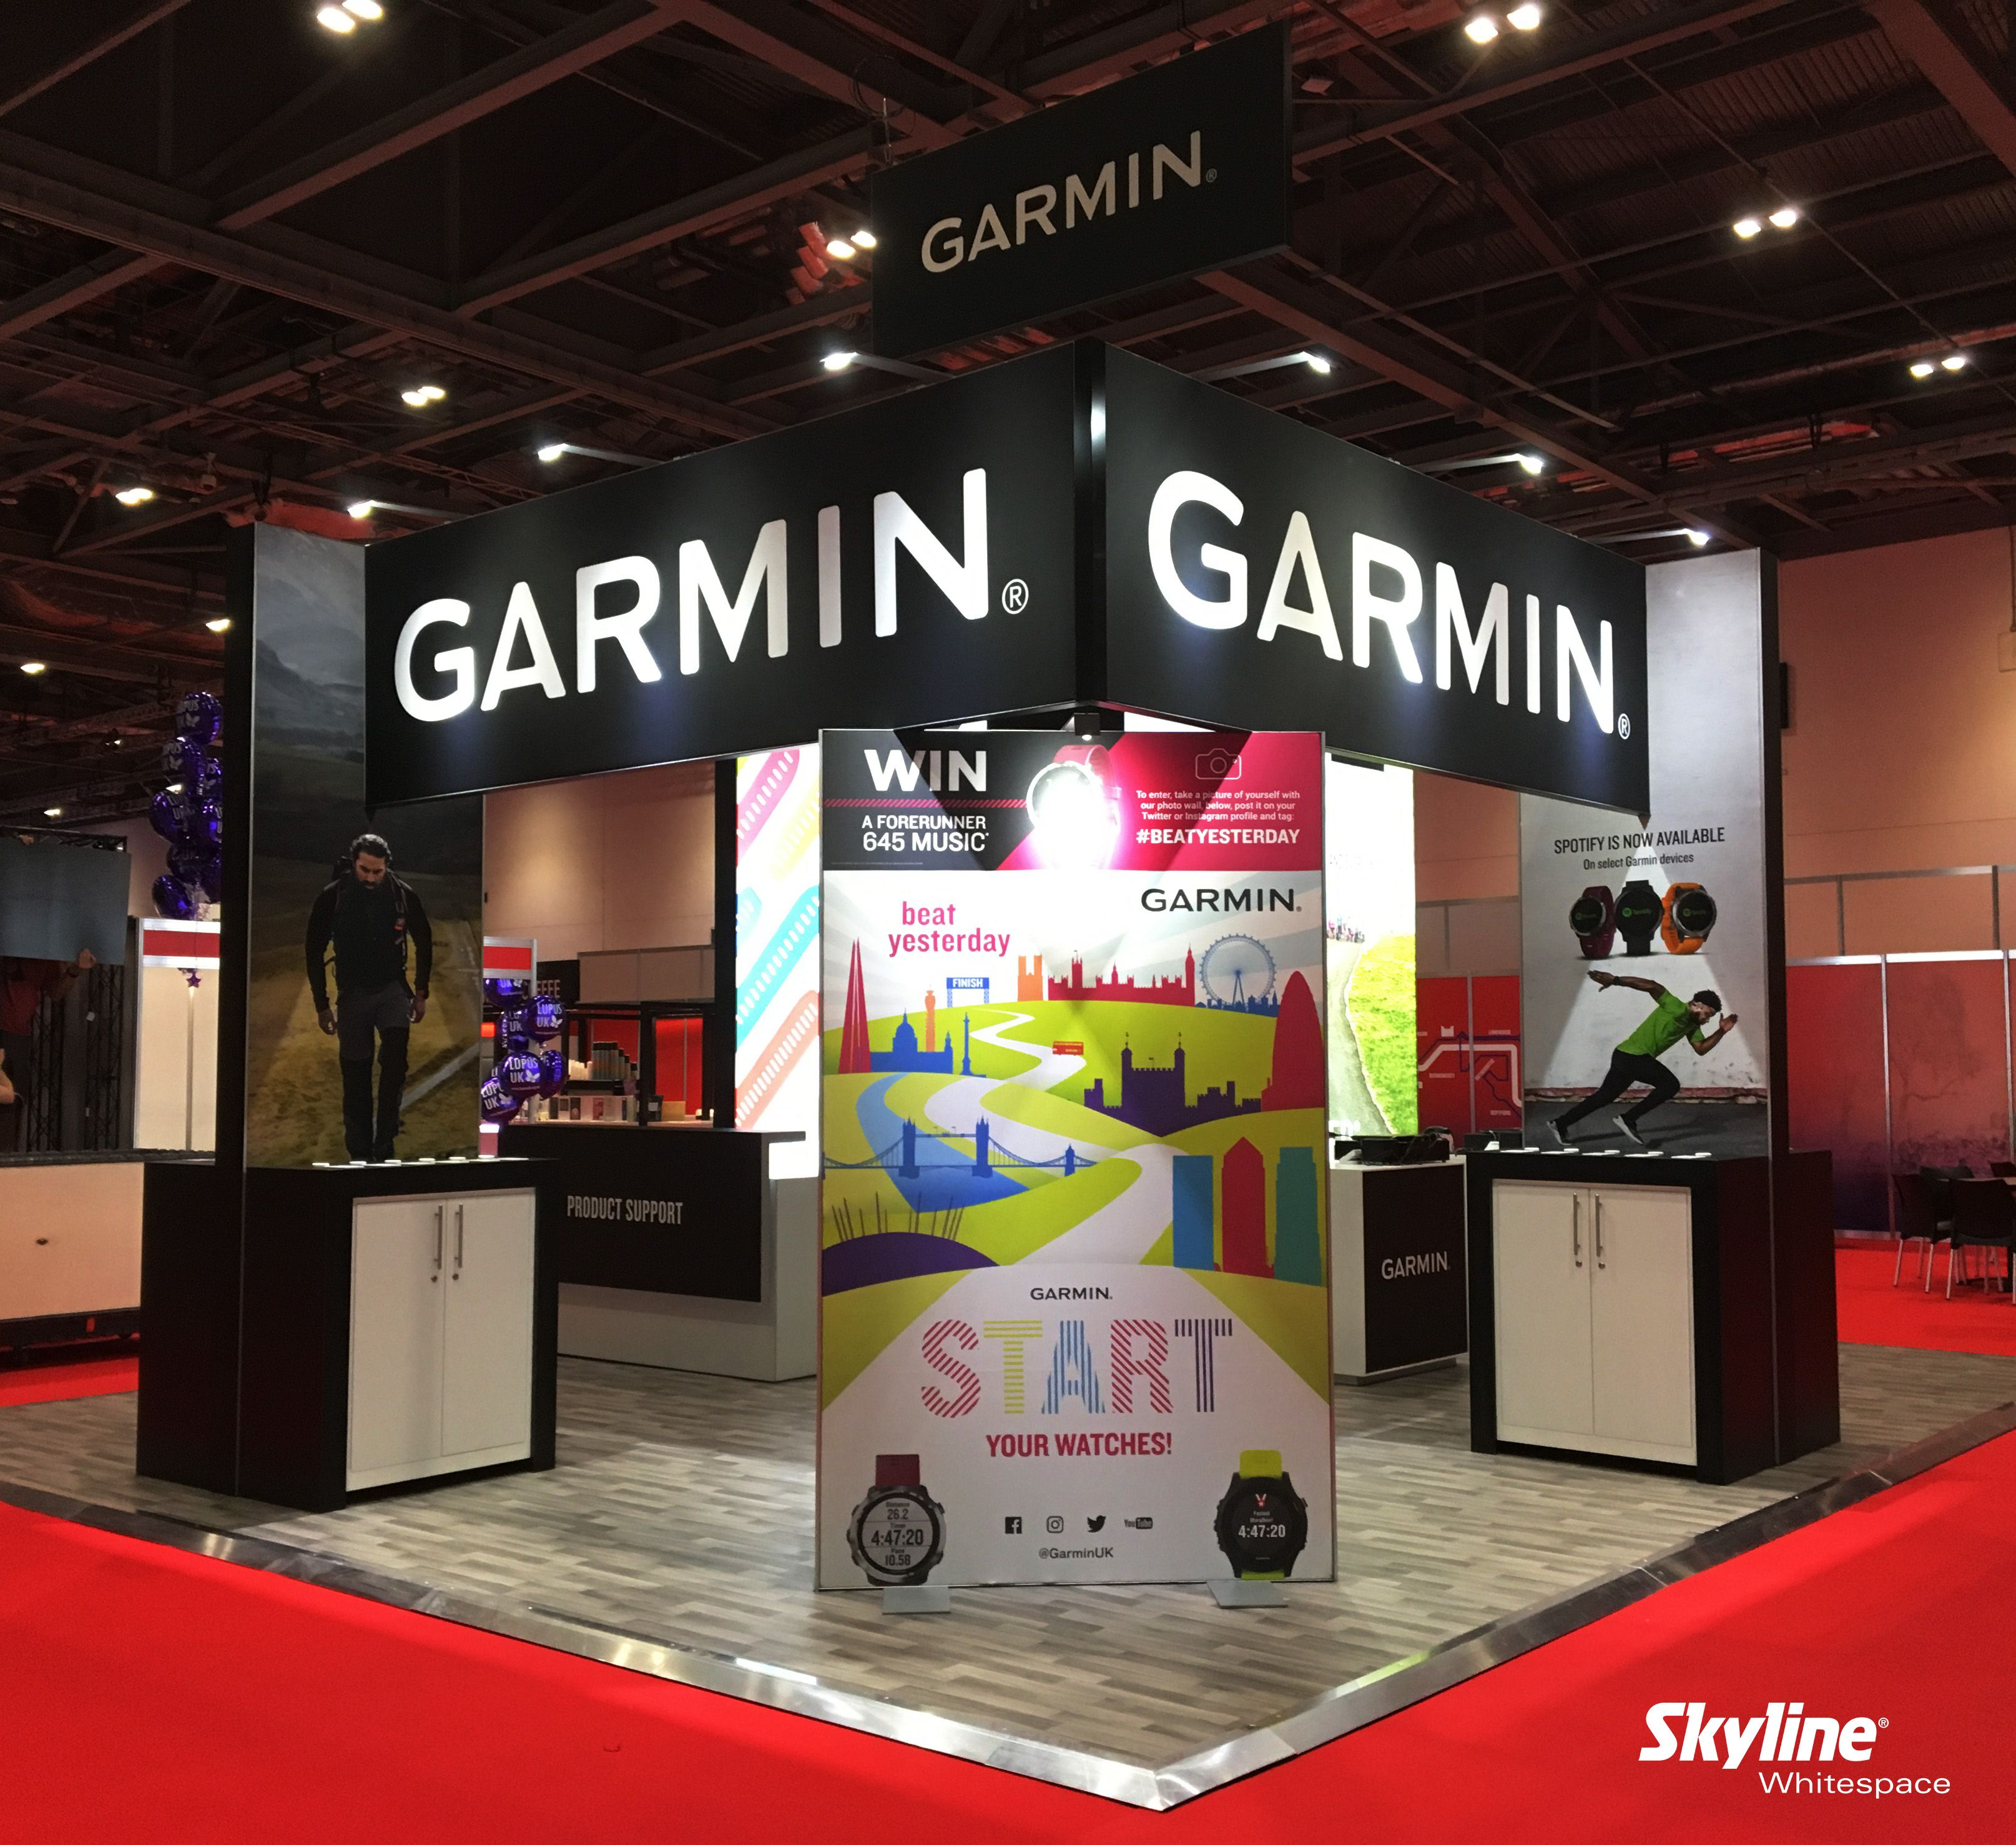 We were pleased to get into the spirit of the London Marathon by working with #Garmin on their stand at the #London #Marathon #Running #Expo. #Design #Exhibitionstand #exhibition #event #customstand #exhibitor #exhibitionideas